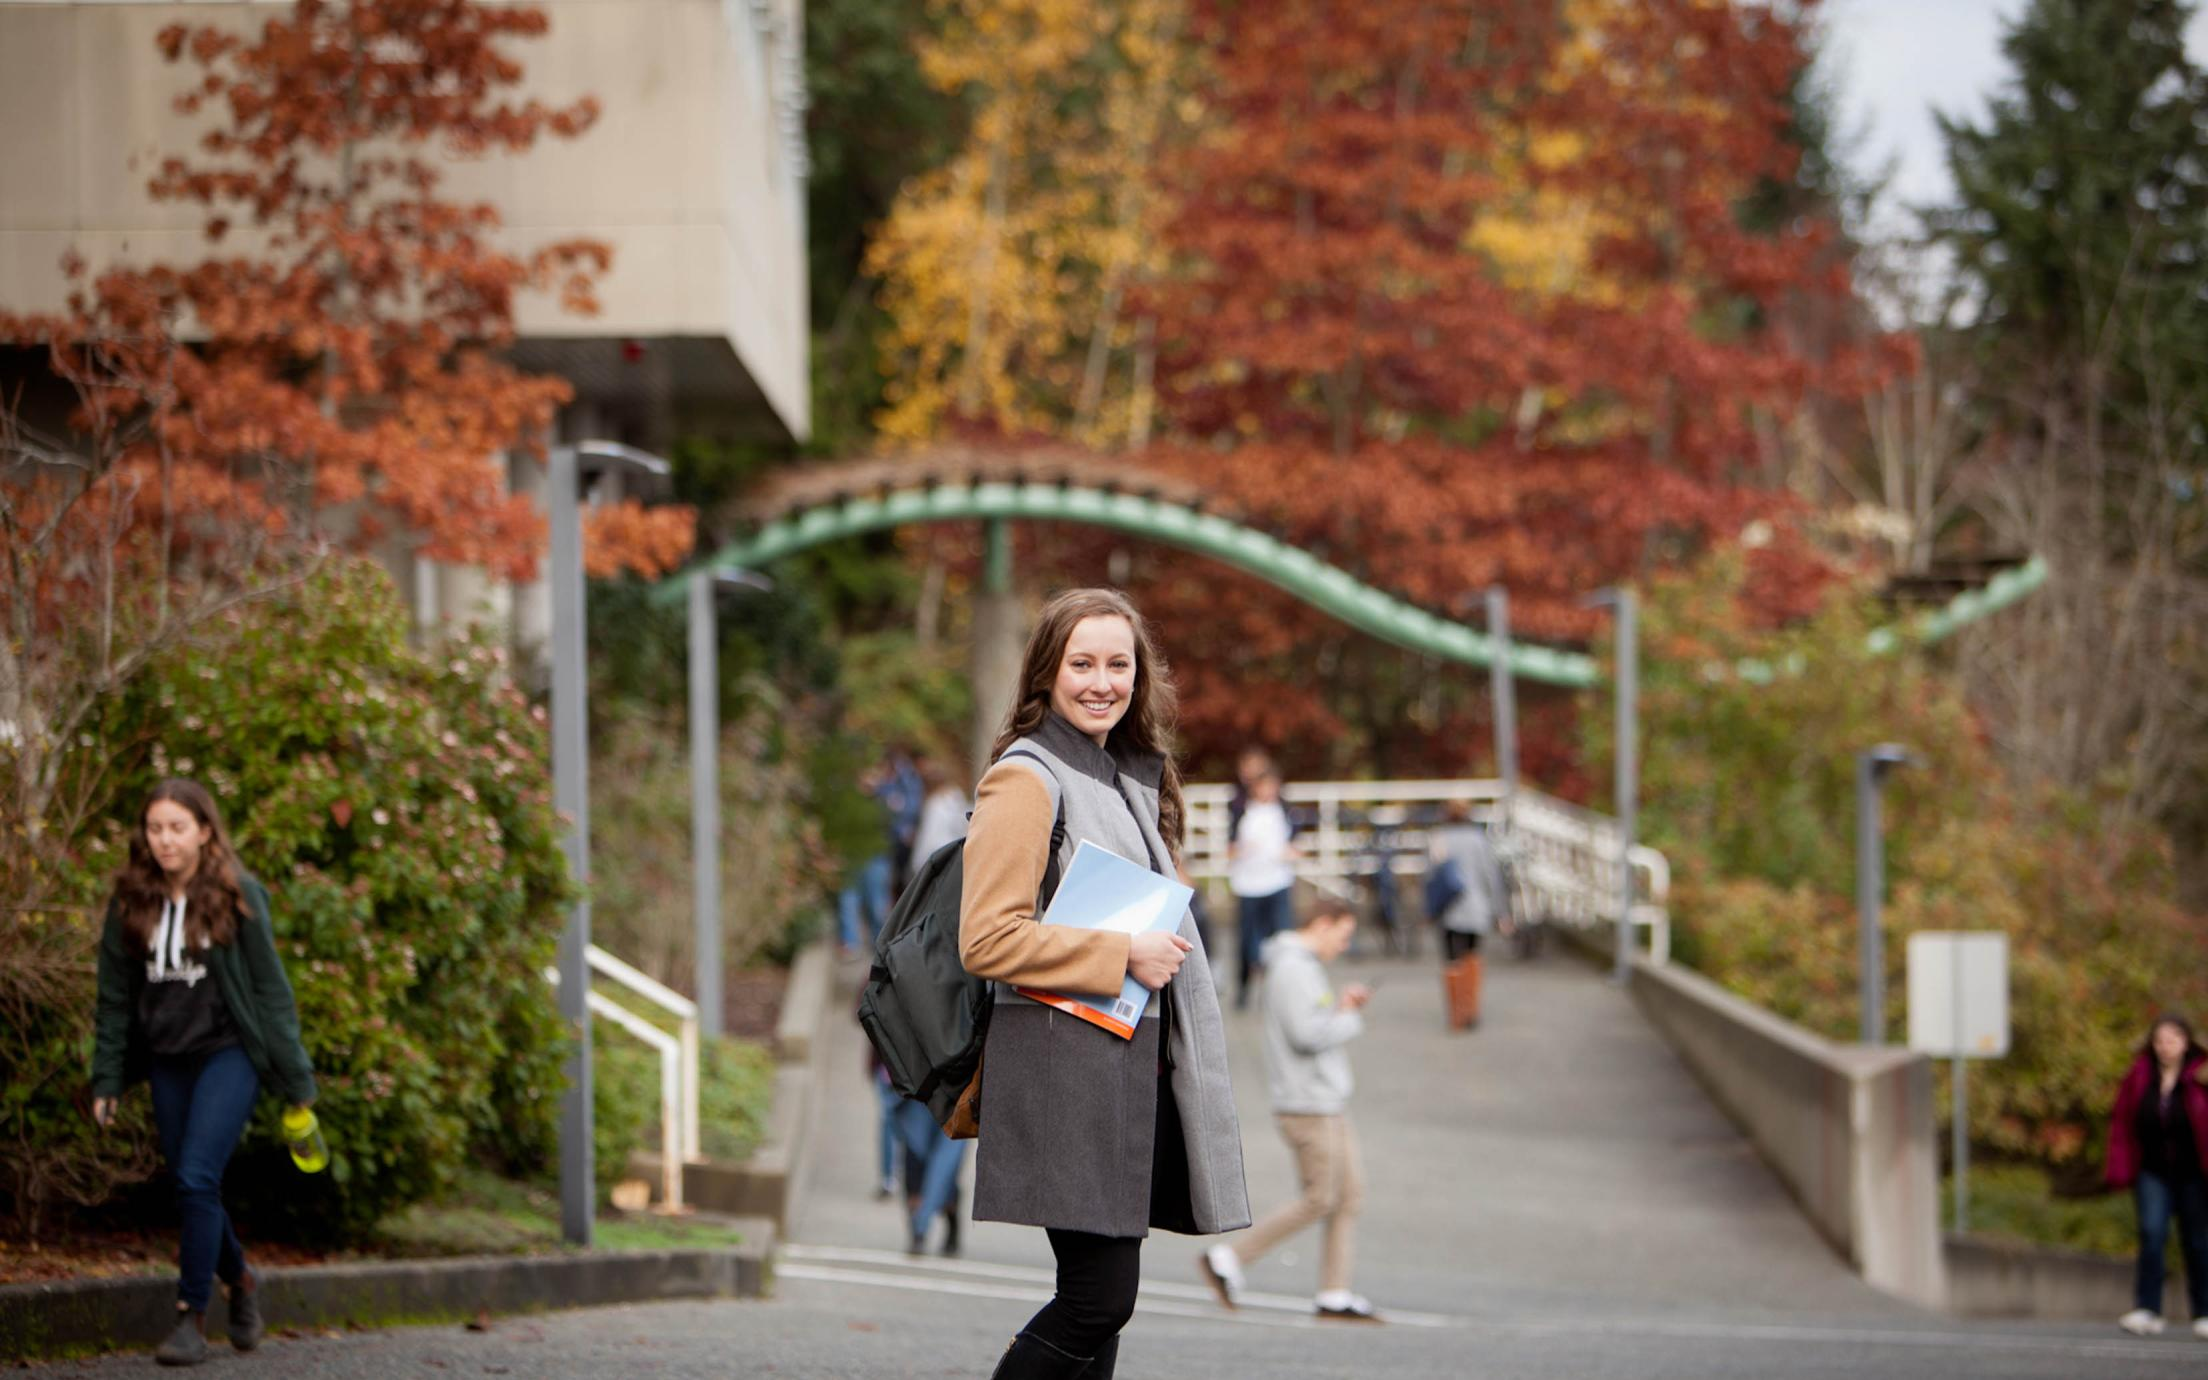 A female student of VIU's employability skills training program on her way to class